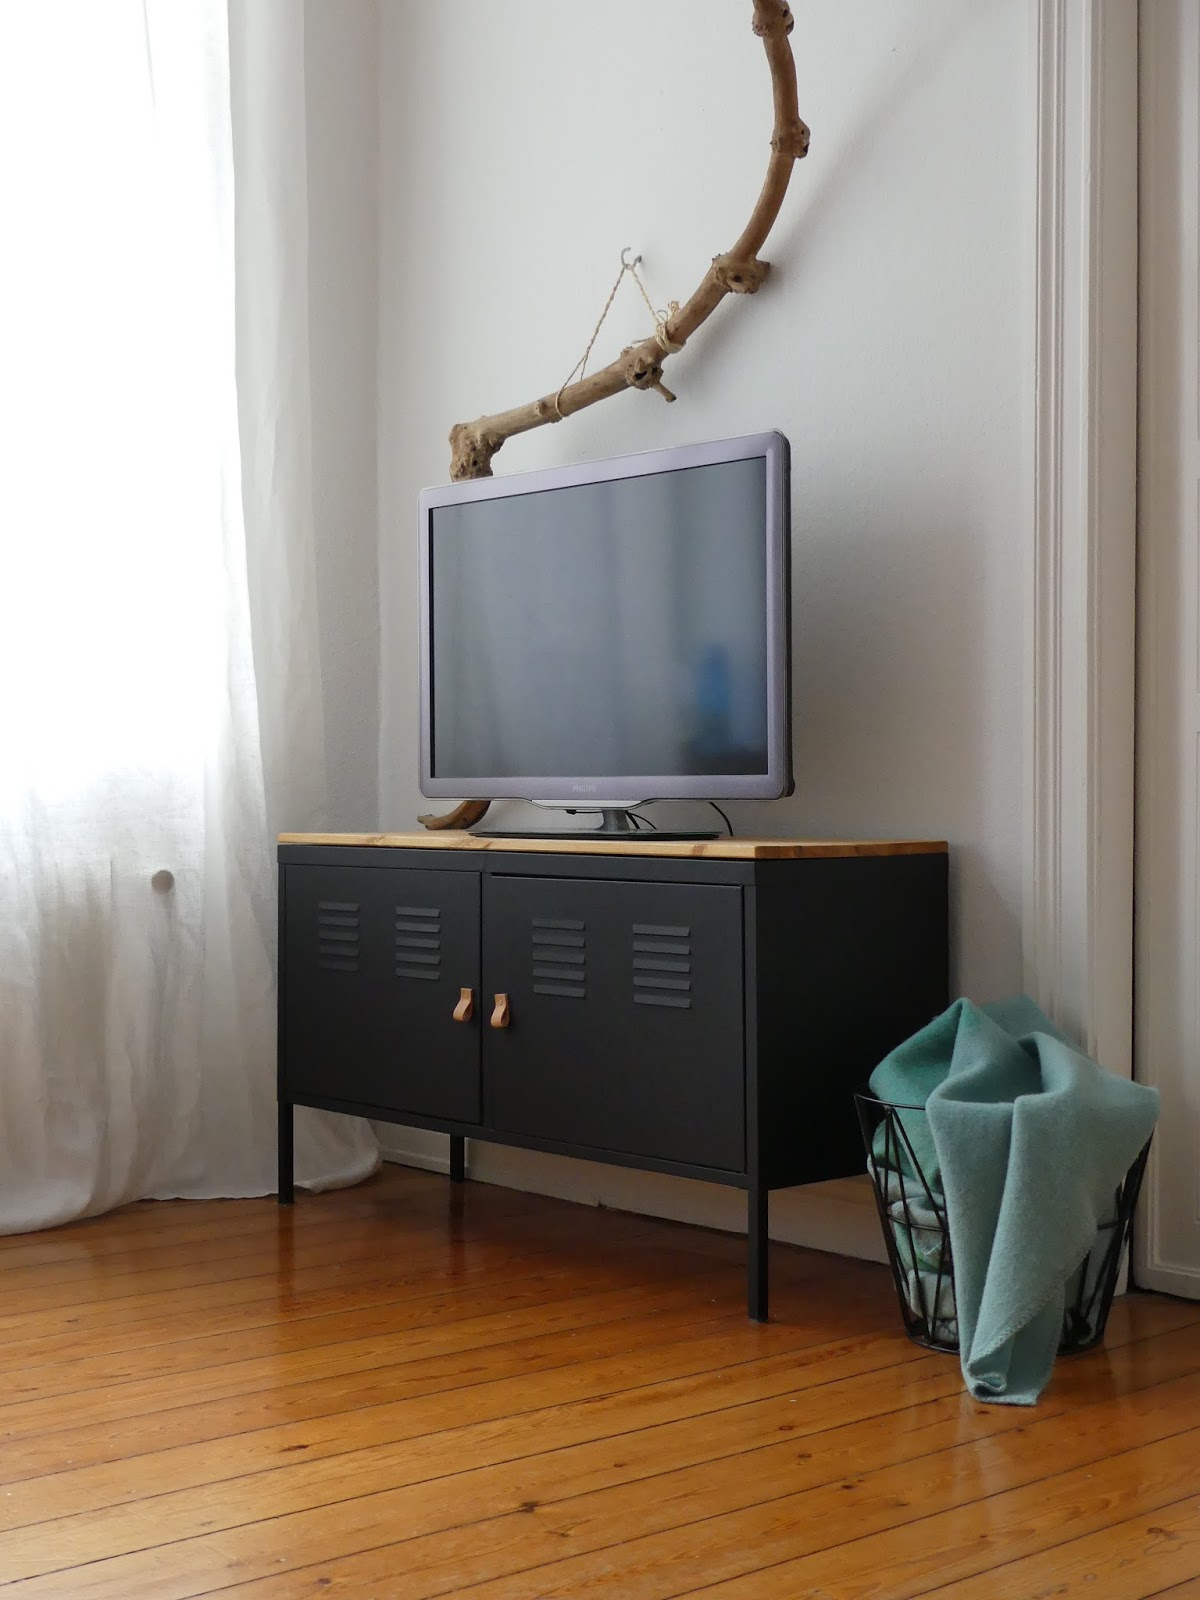 ikea hack aus klapprigem ps schrank wird edle tv konsole mintundmeer. Black Bedroom Furniture Sets. Home Design Ideas